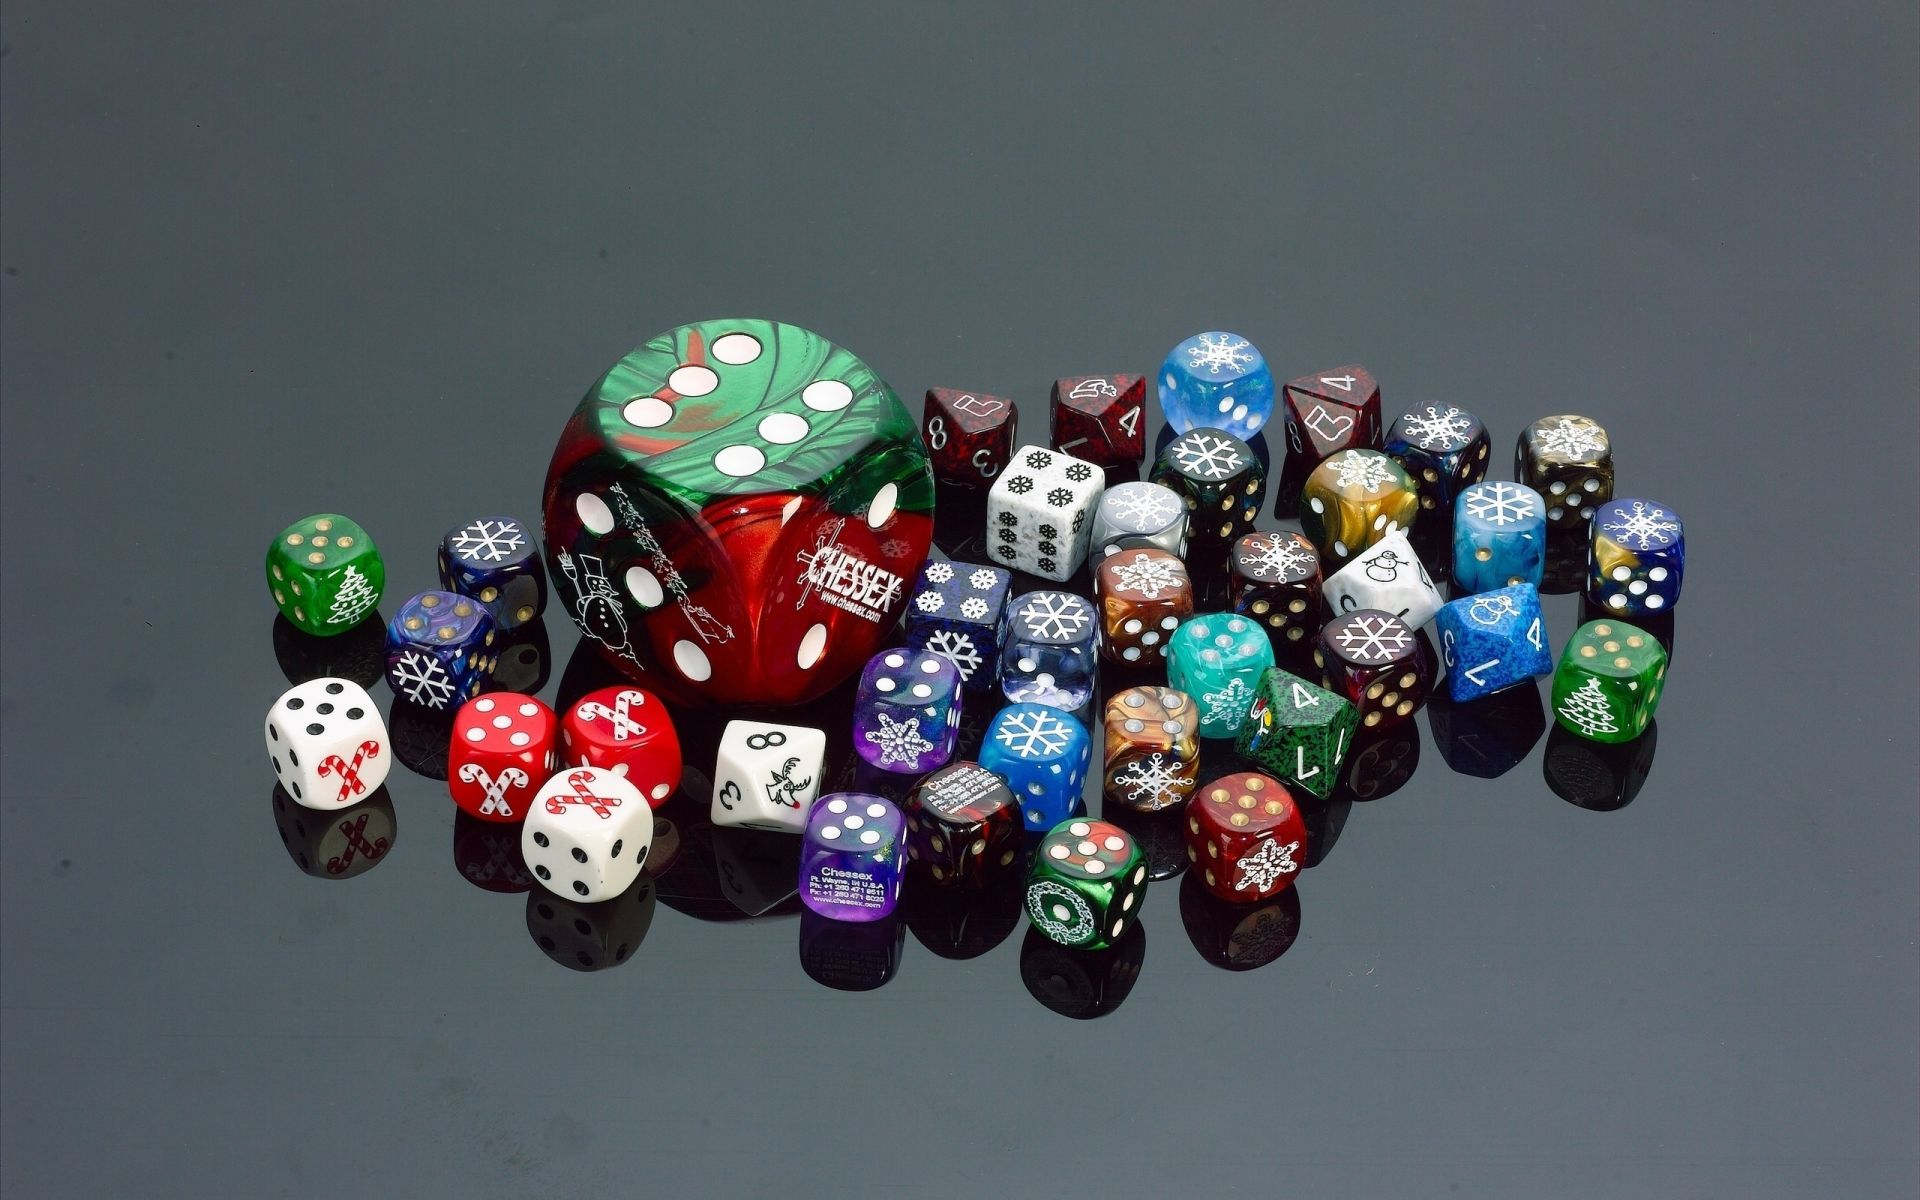 geometric shapes risk casino chance gambling dice luck